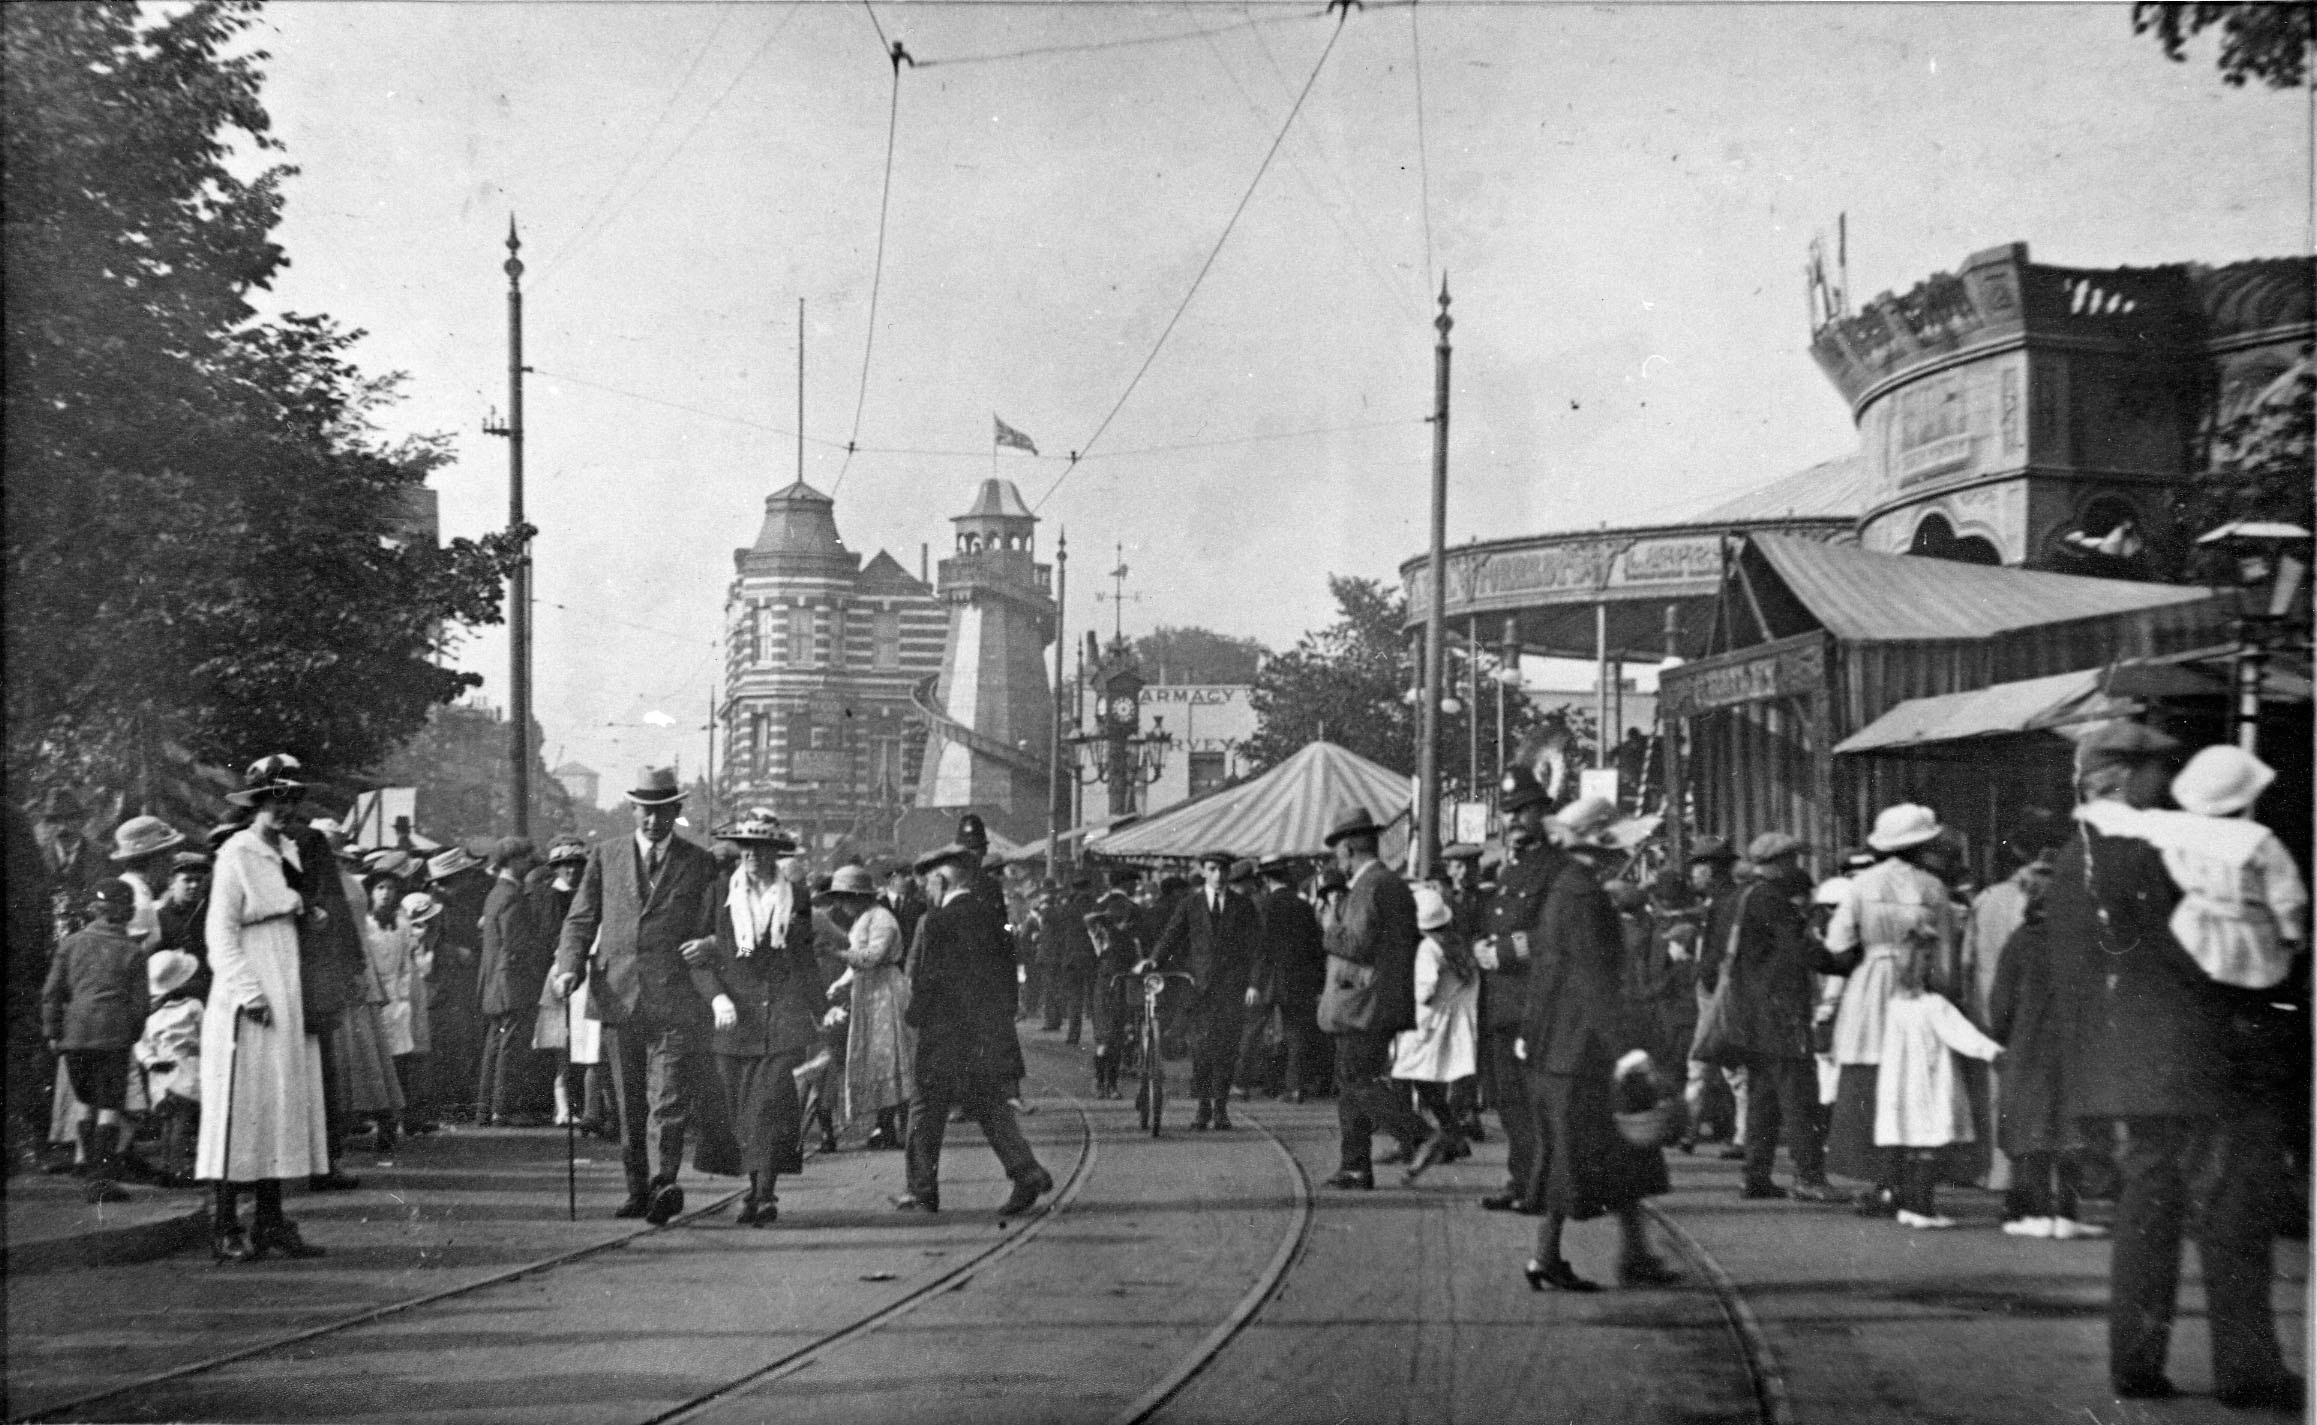 Mitcham Fair during the 1920s